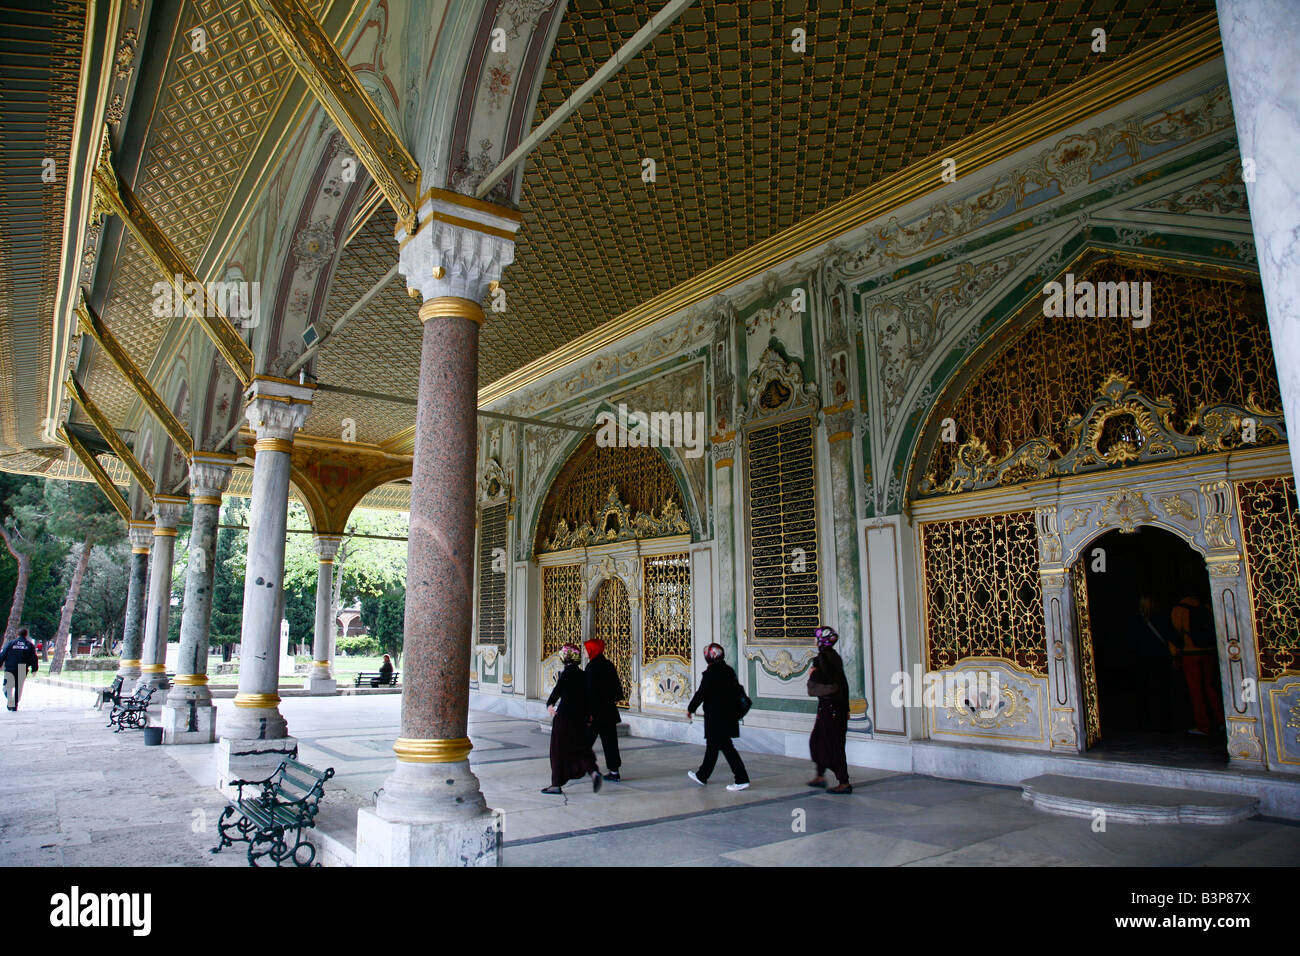 May 2008 - Topkapi Palace the Imperial Council chamber Istanbul Turkey - Stock Image